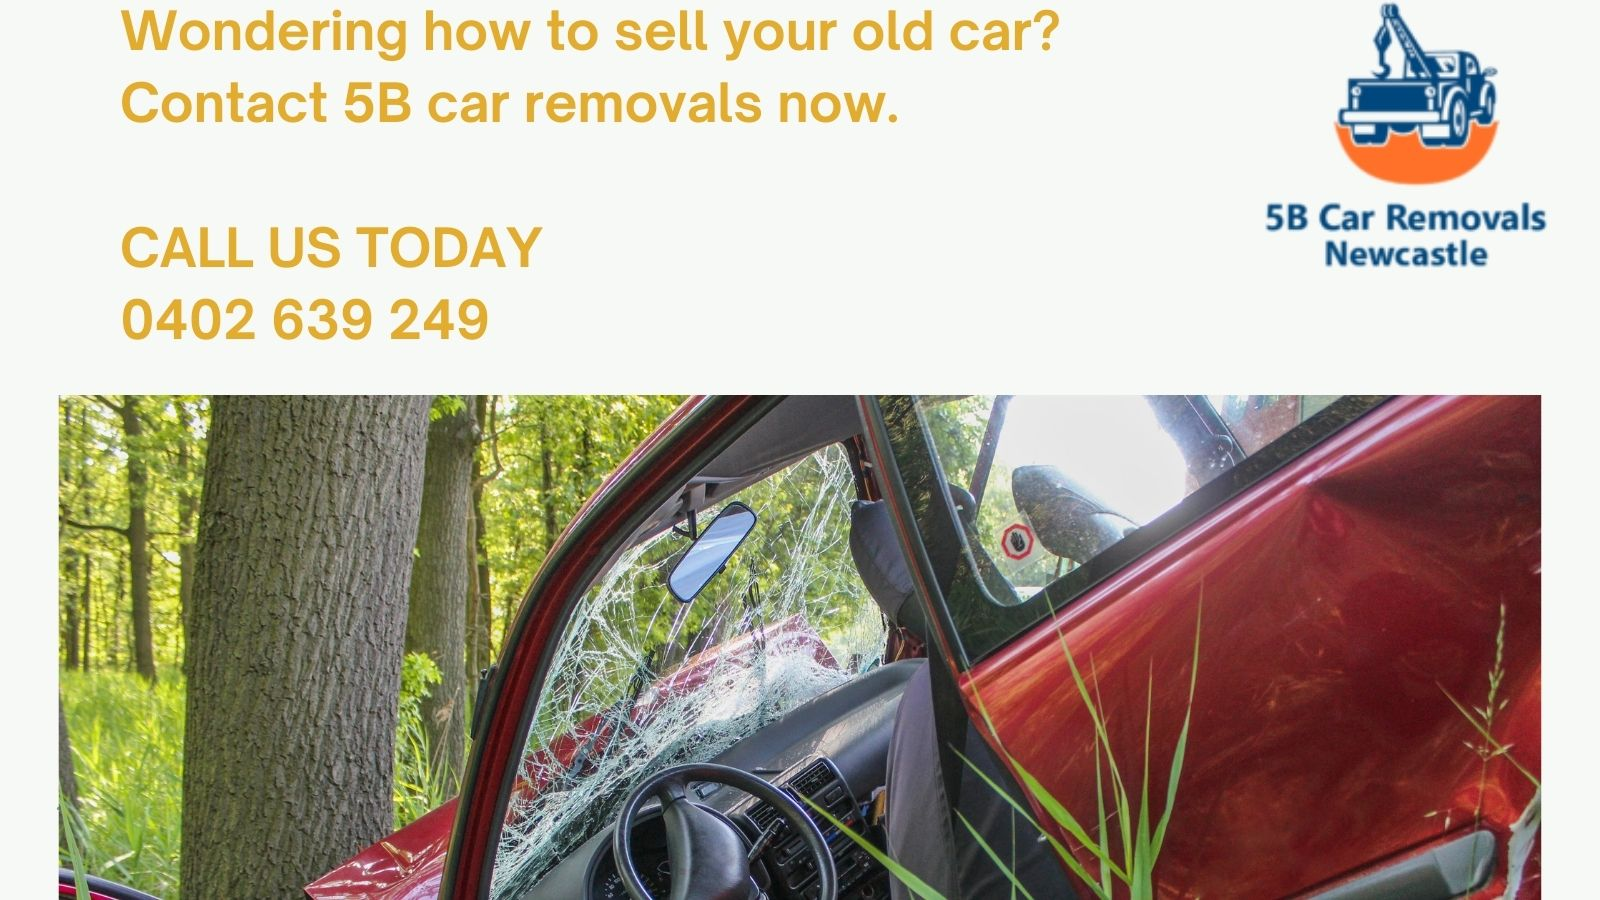 If you have old Car for scrap in Cardiff then call 5B car removals now.